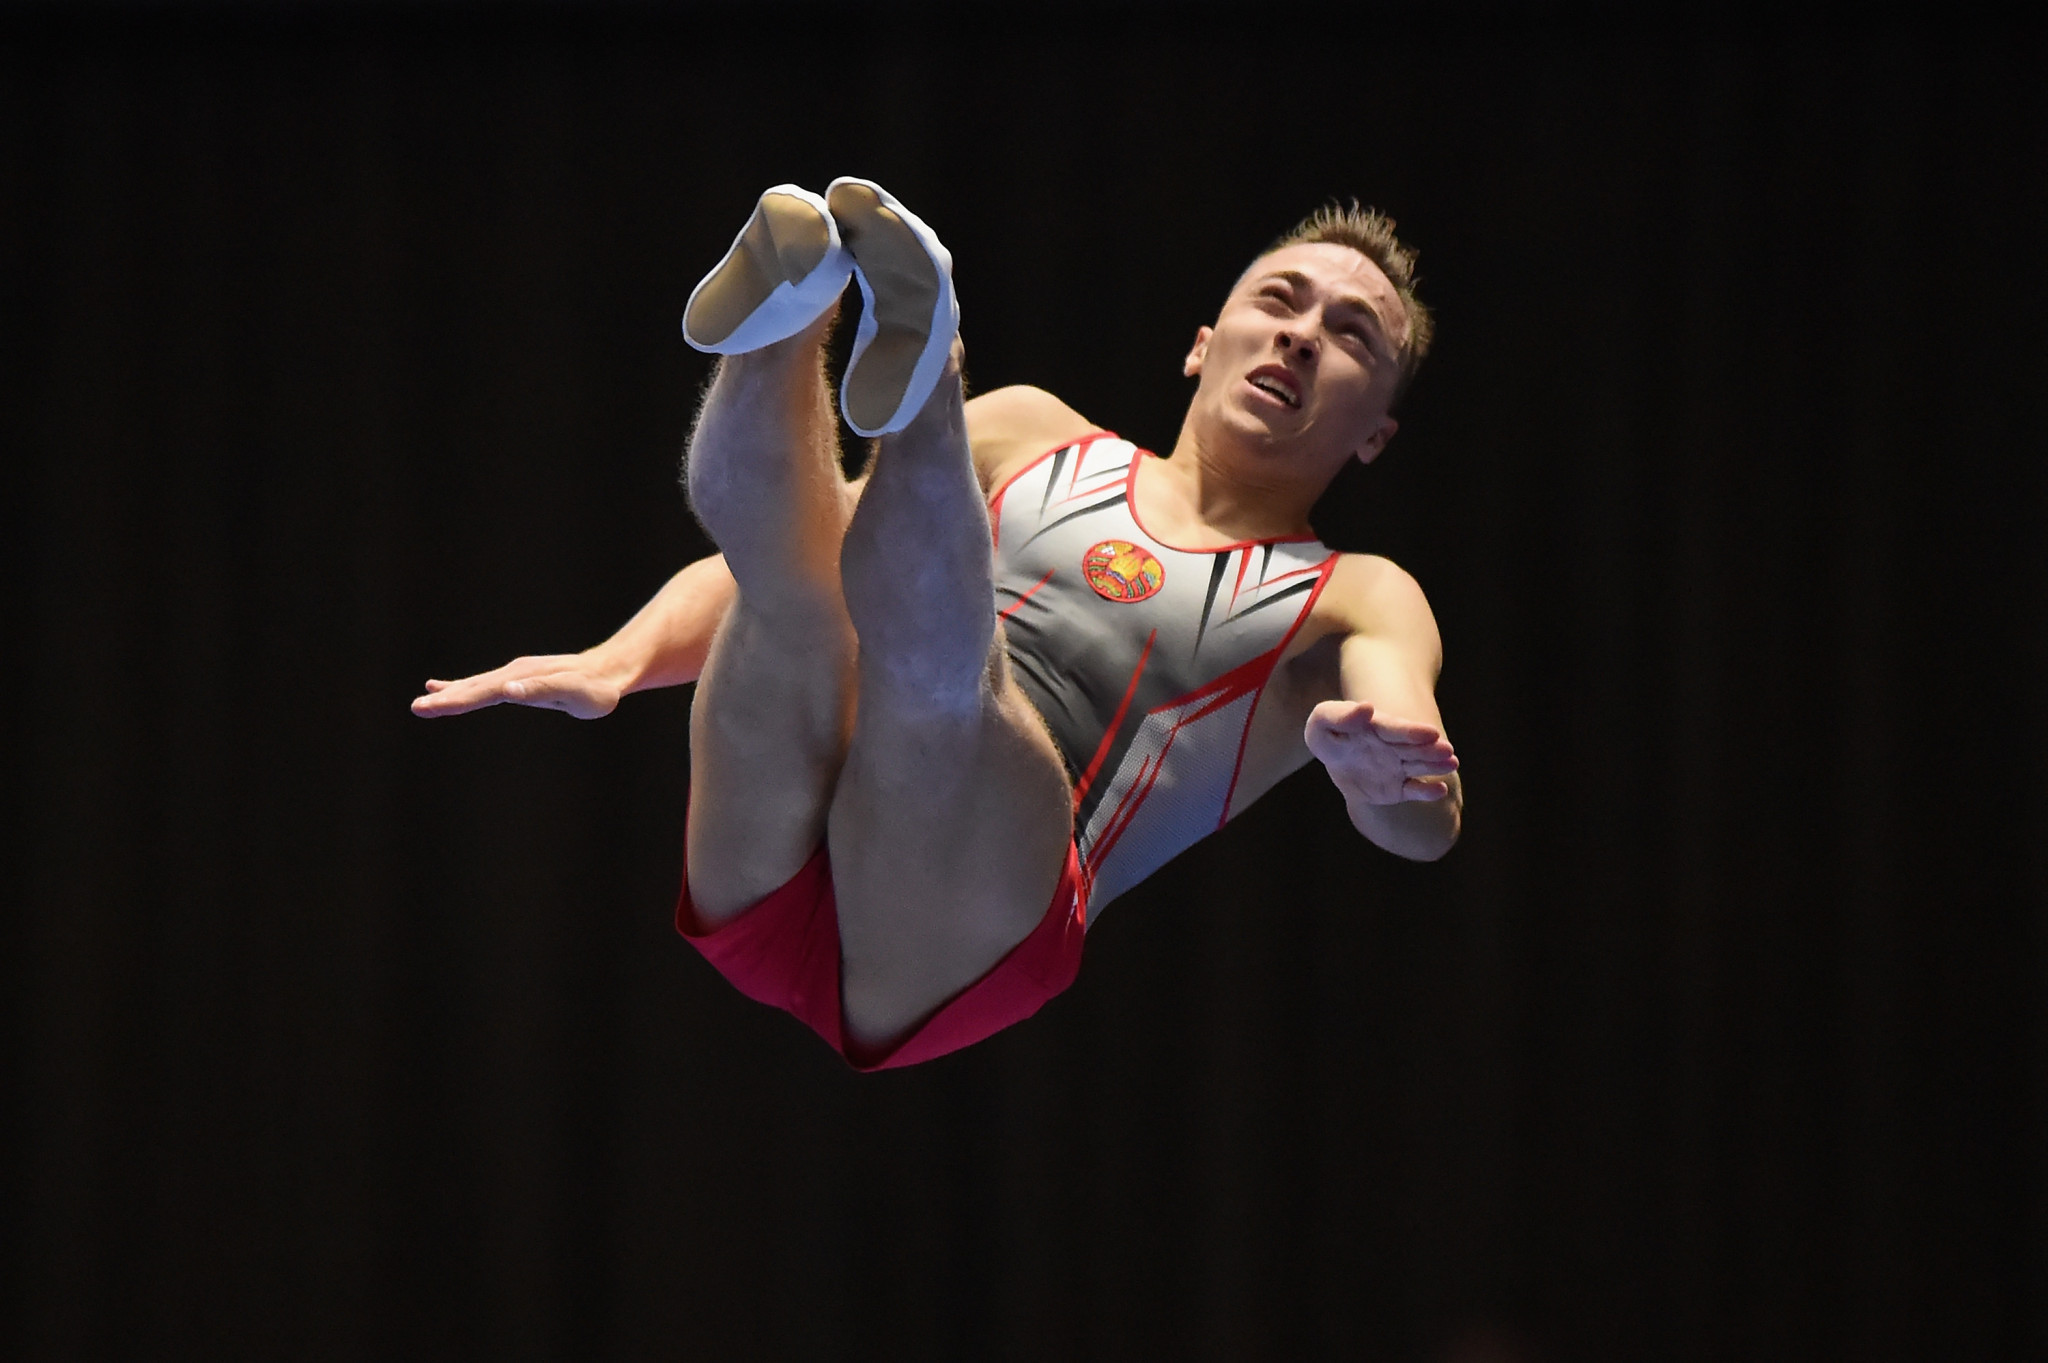 Belarus and Japan earn shock victories at FIG Trampoline World Championships